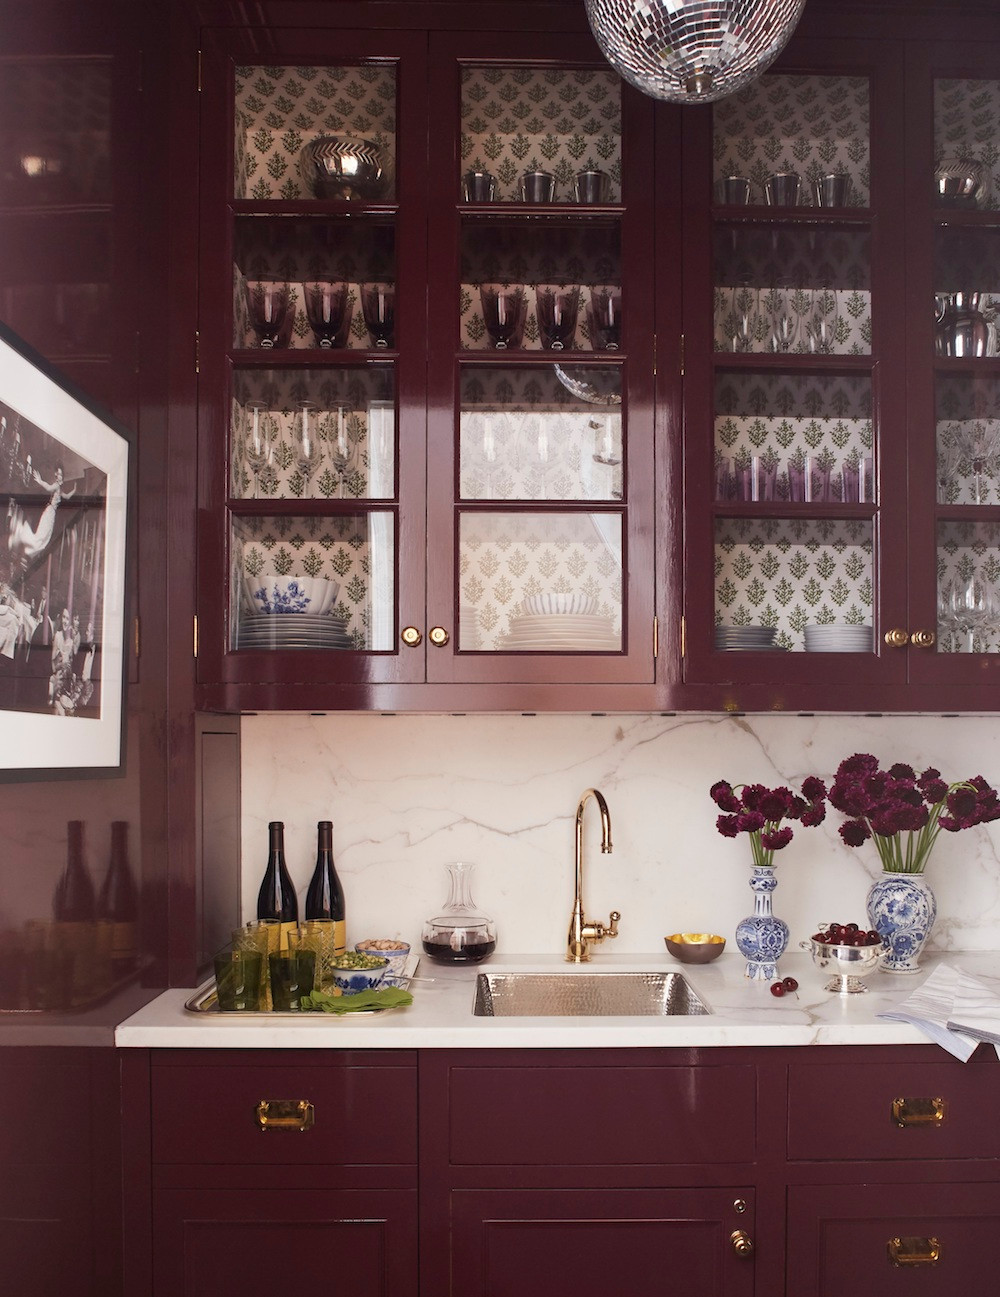 Such a rich colour on the cabinets! The marble texture anchors the small pattern in the cabinets nicely. Image: Ashley Whittaker Design